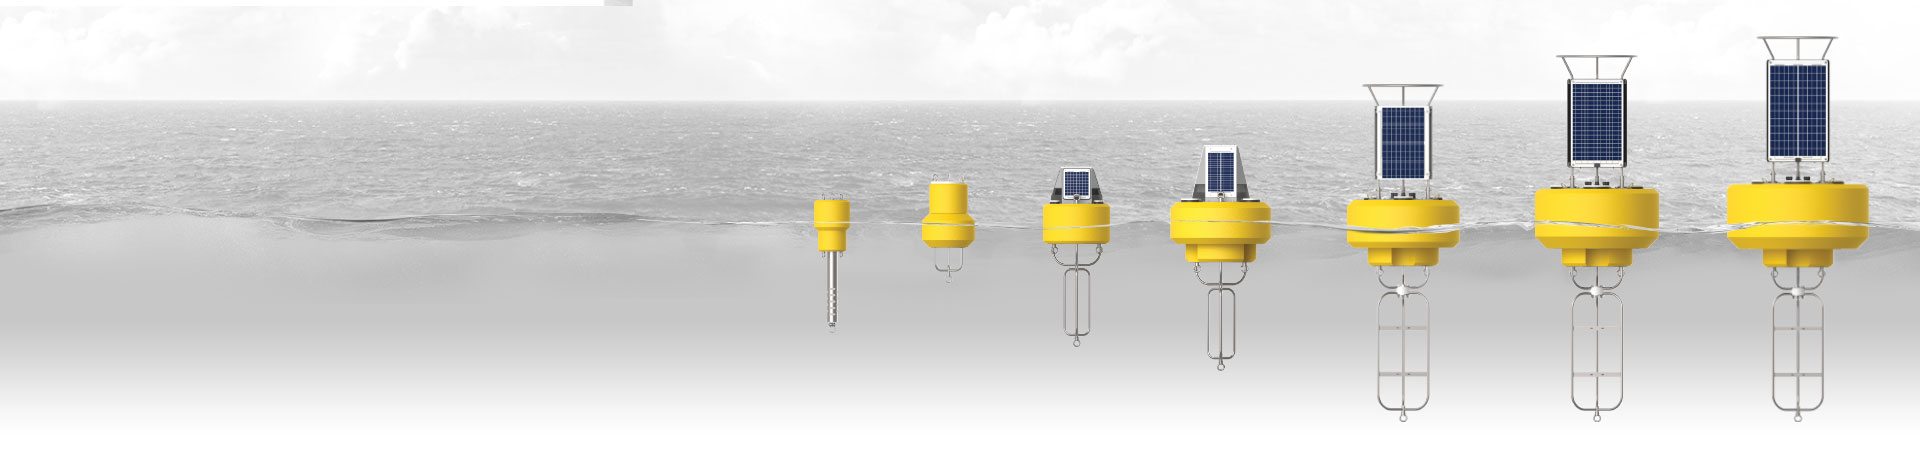 Data Buoys